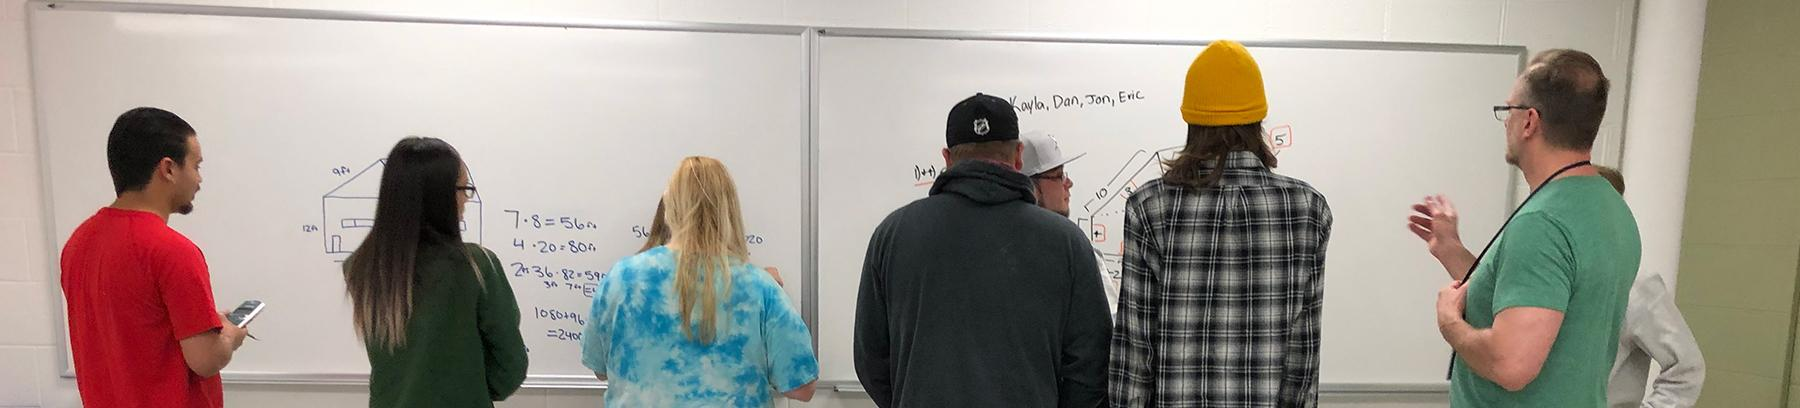 Students and instructor standing in front of a white board working on a math problem.